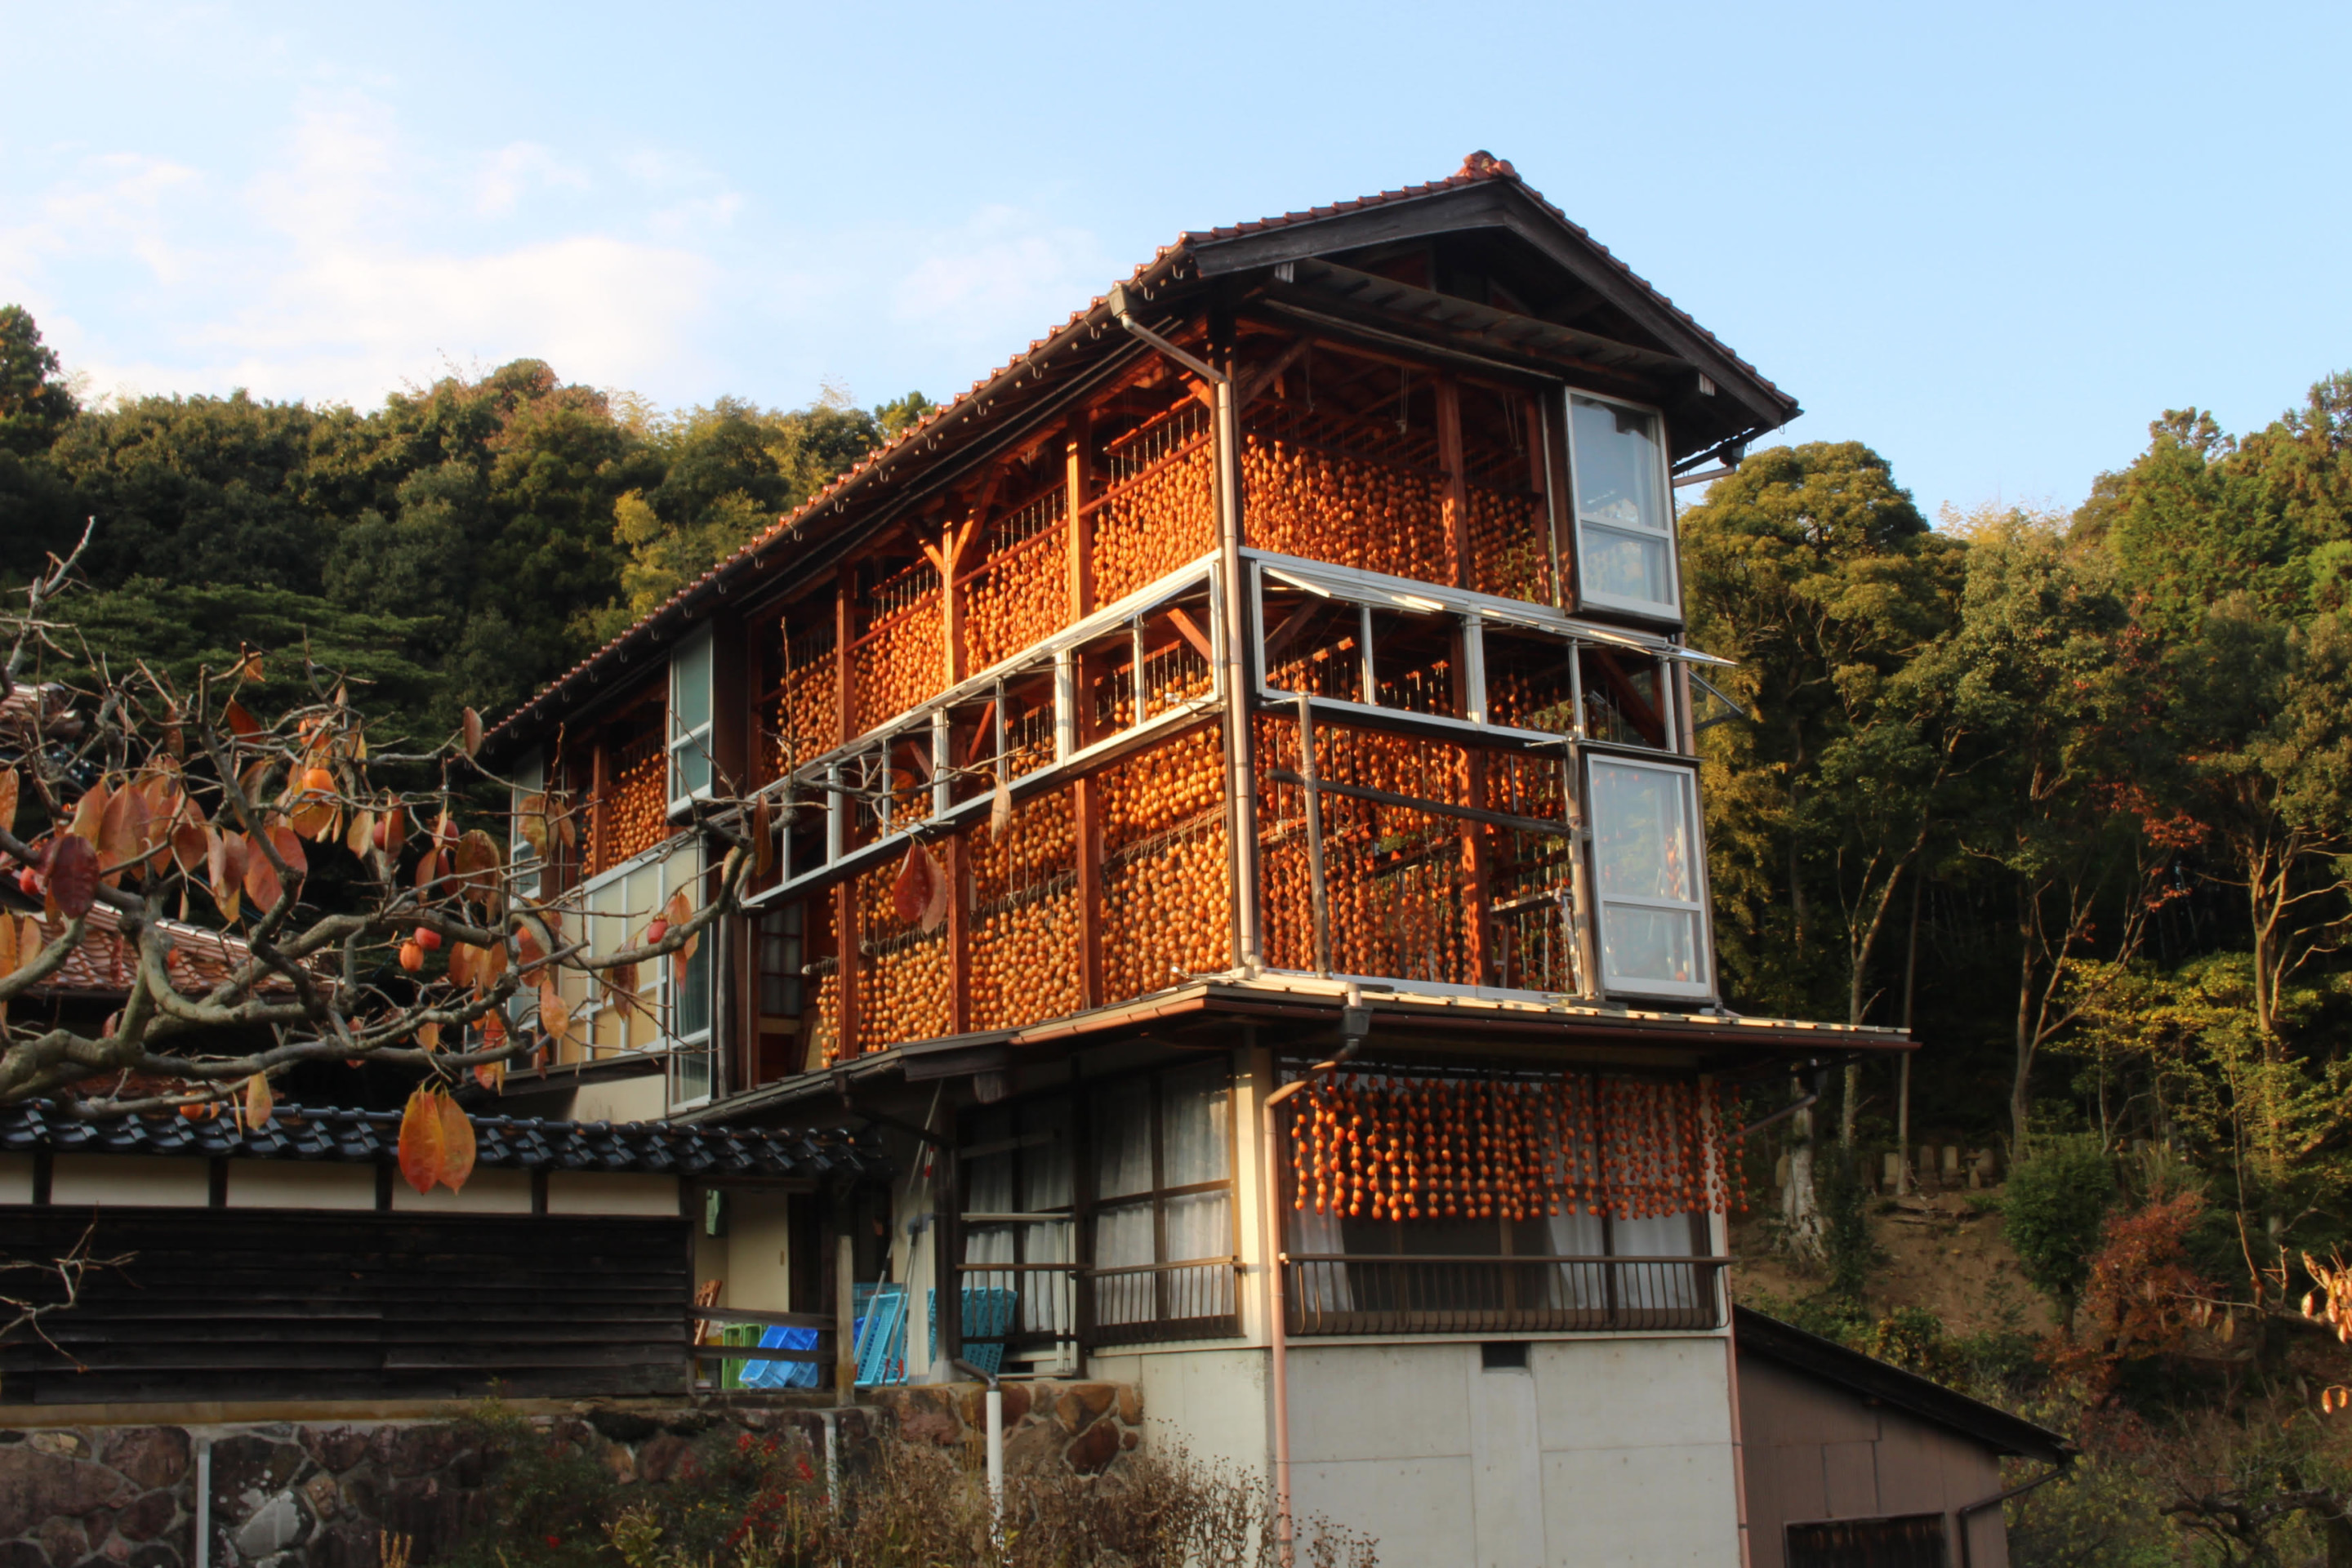 a house in japan with decorative embellishments over windows